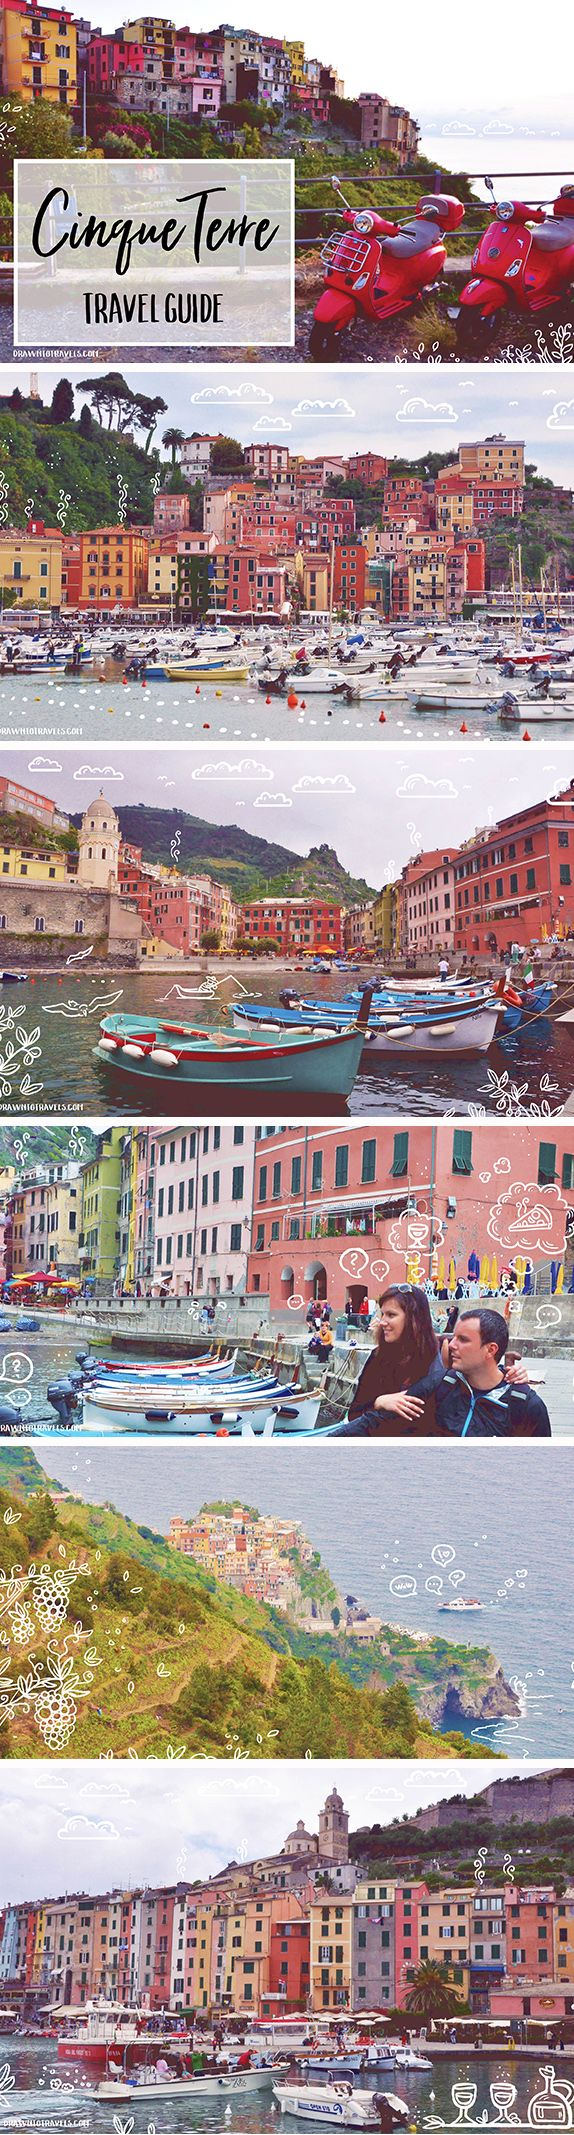 Drawntotravels.com: Cinque Terre, this beloved colorful gem is located on the west coast of Italy, 2 hours from Genoa or 1 hour from Pisa. The Cinque Terre area includes five towns: Riomaggiore, Manarola, Corniglia, Vernazza, and Monterosso al Mare.